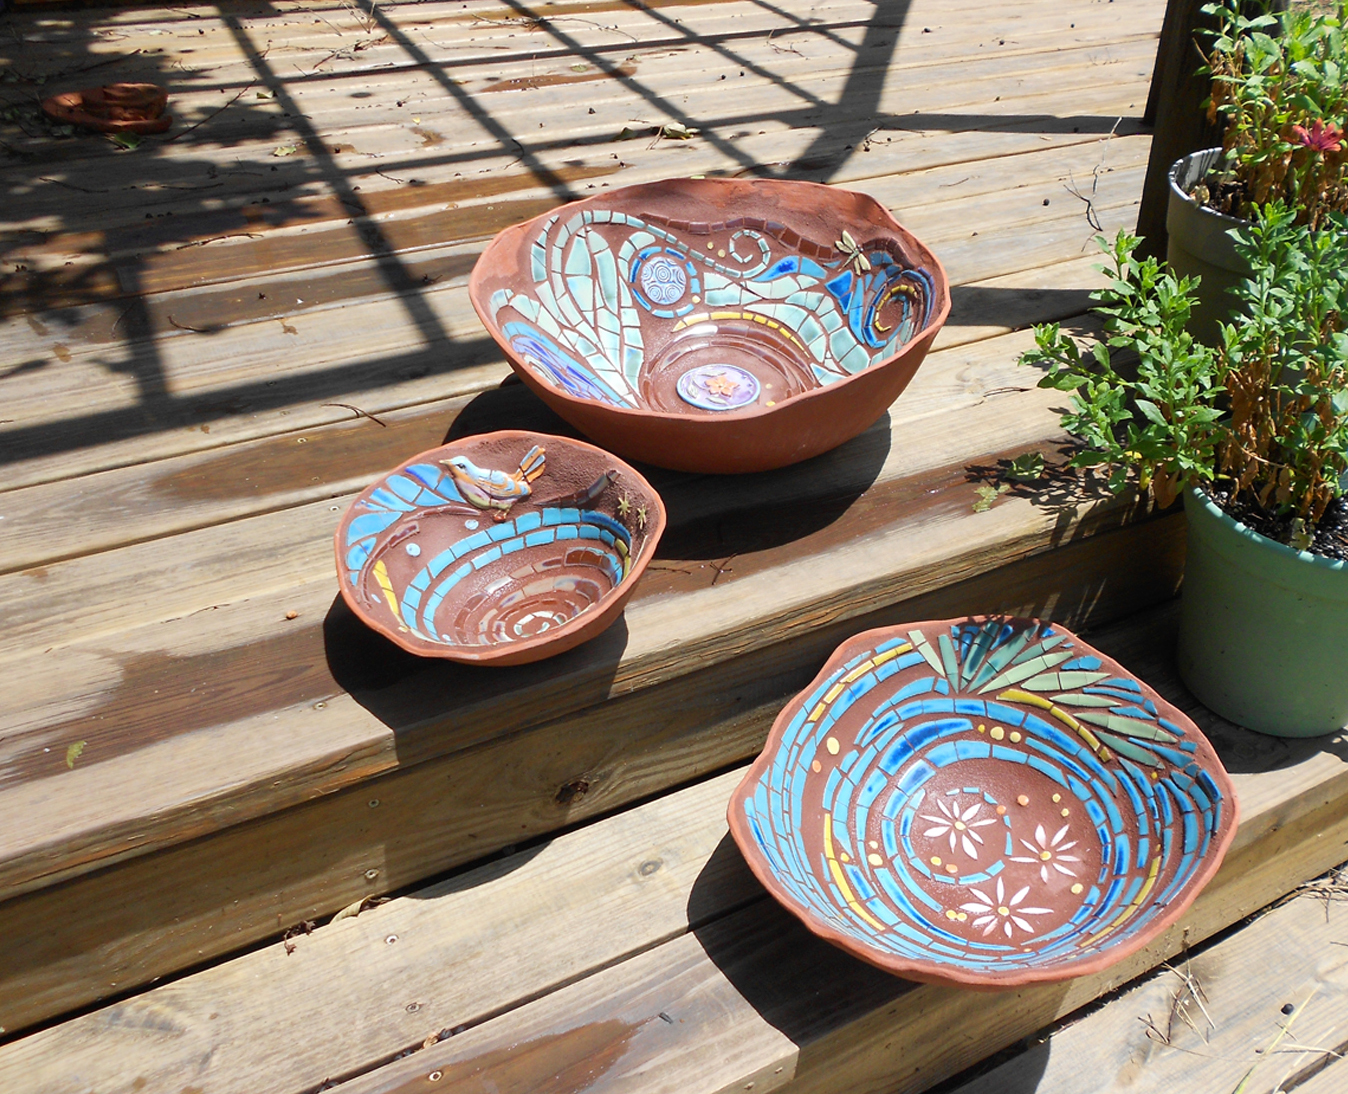 Rain bowls by Parran Collery